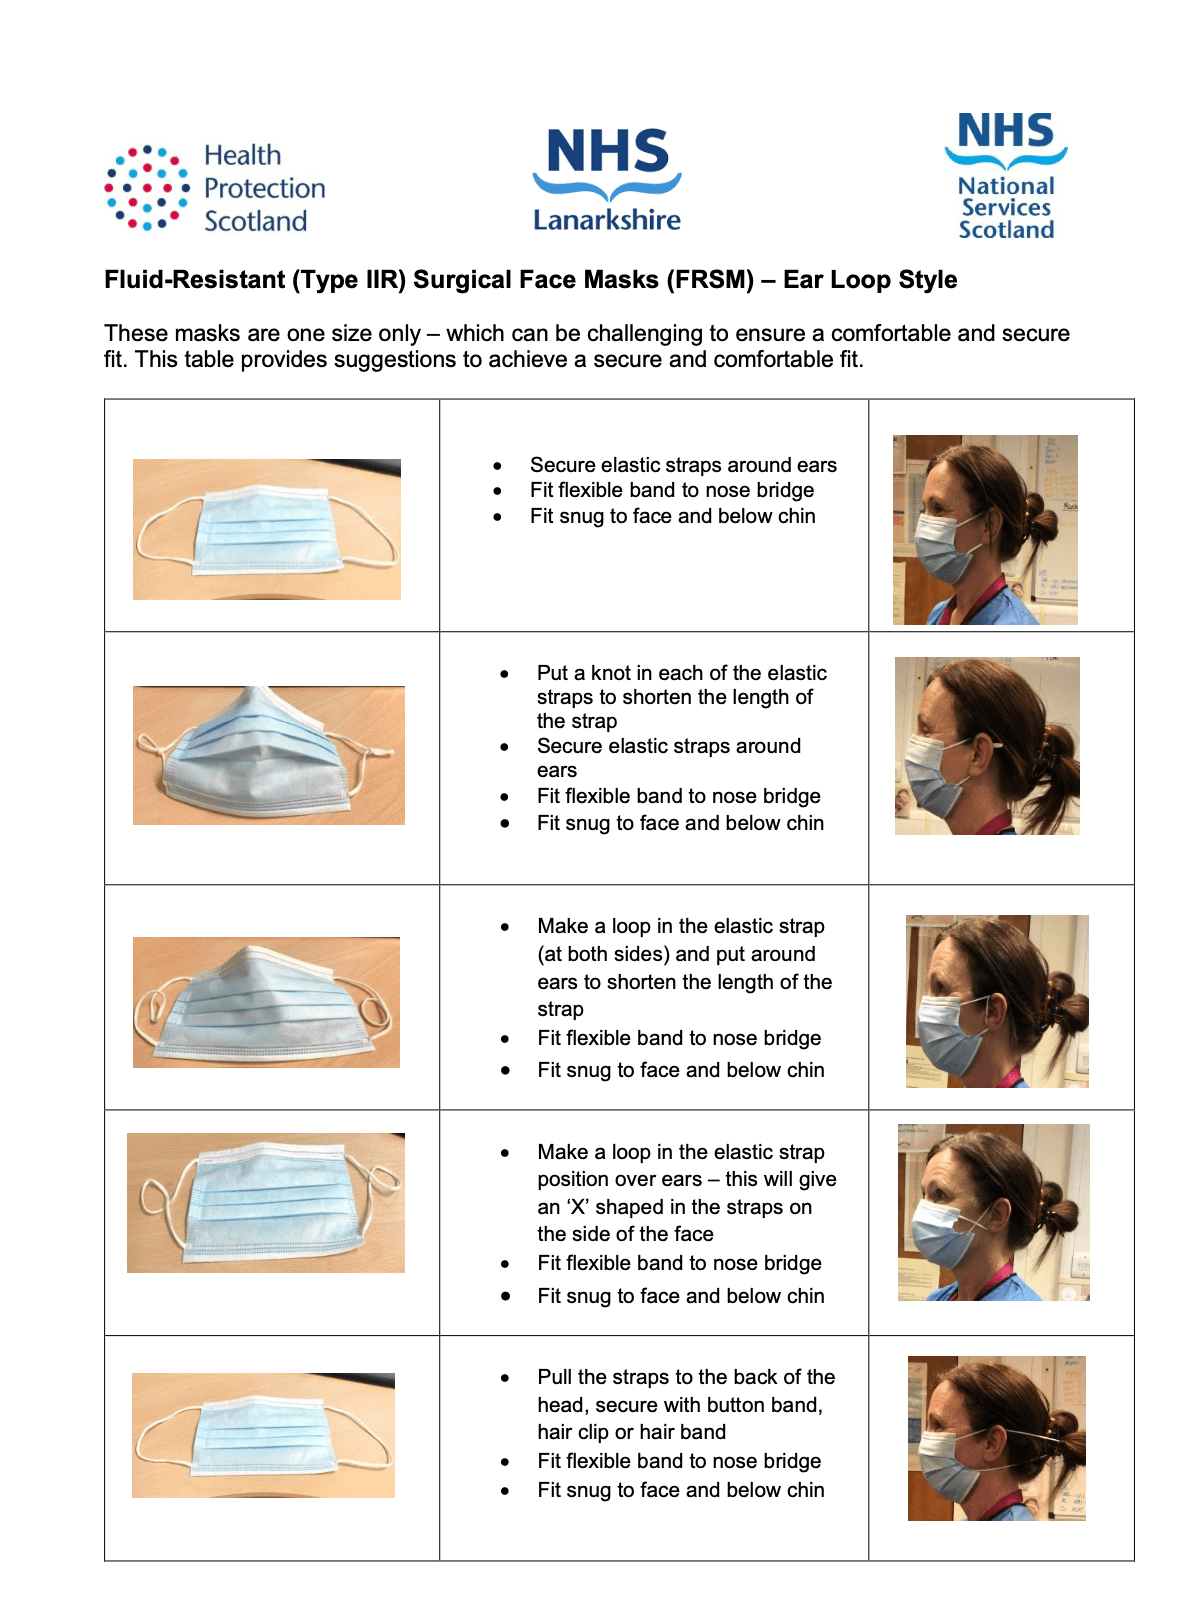 Surgical Masks - suggestions to achieve a secure and comfortable fit.